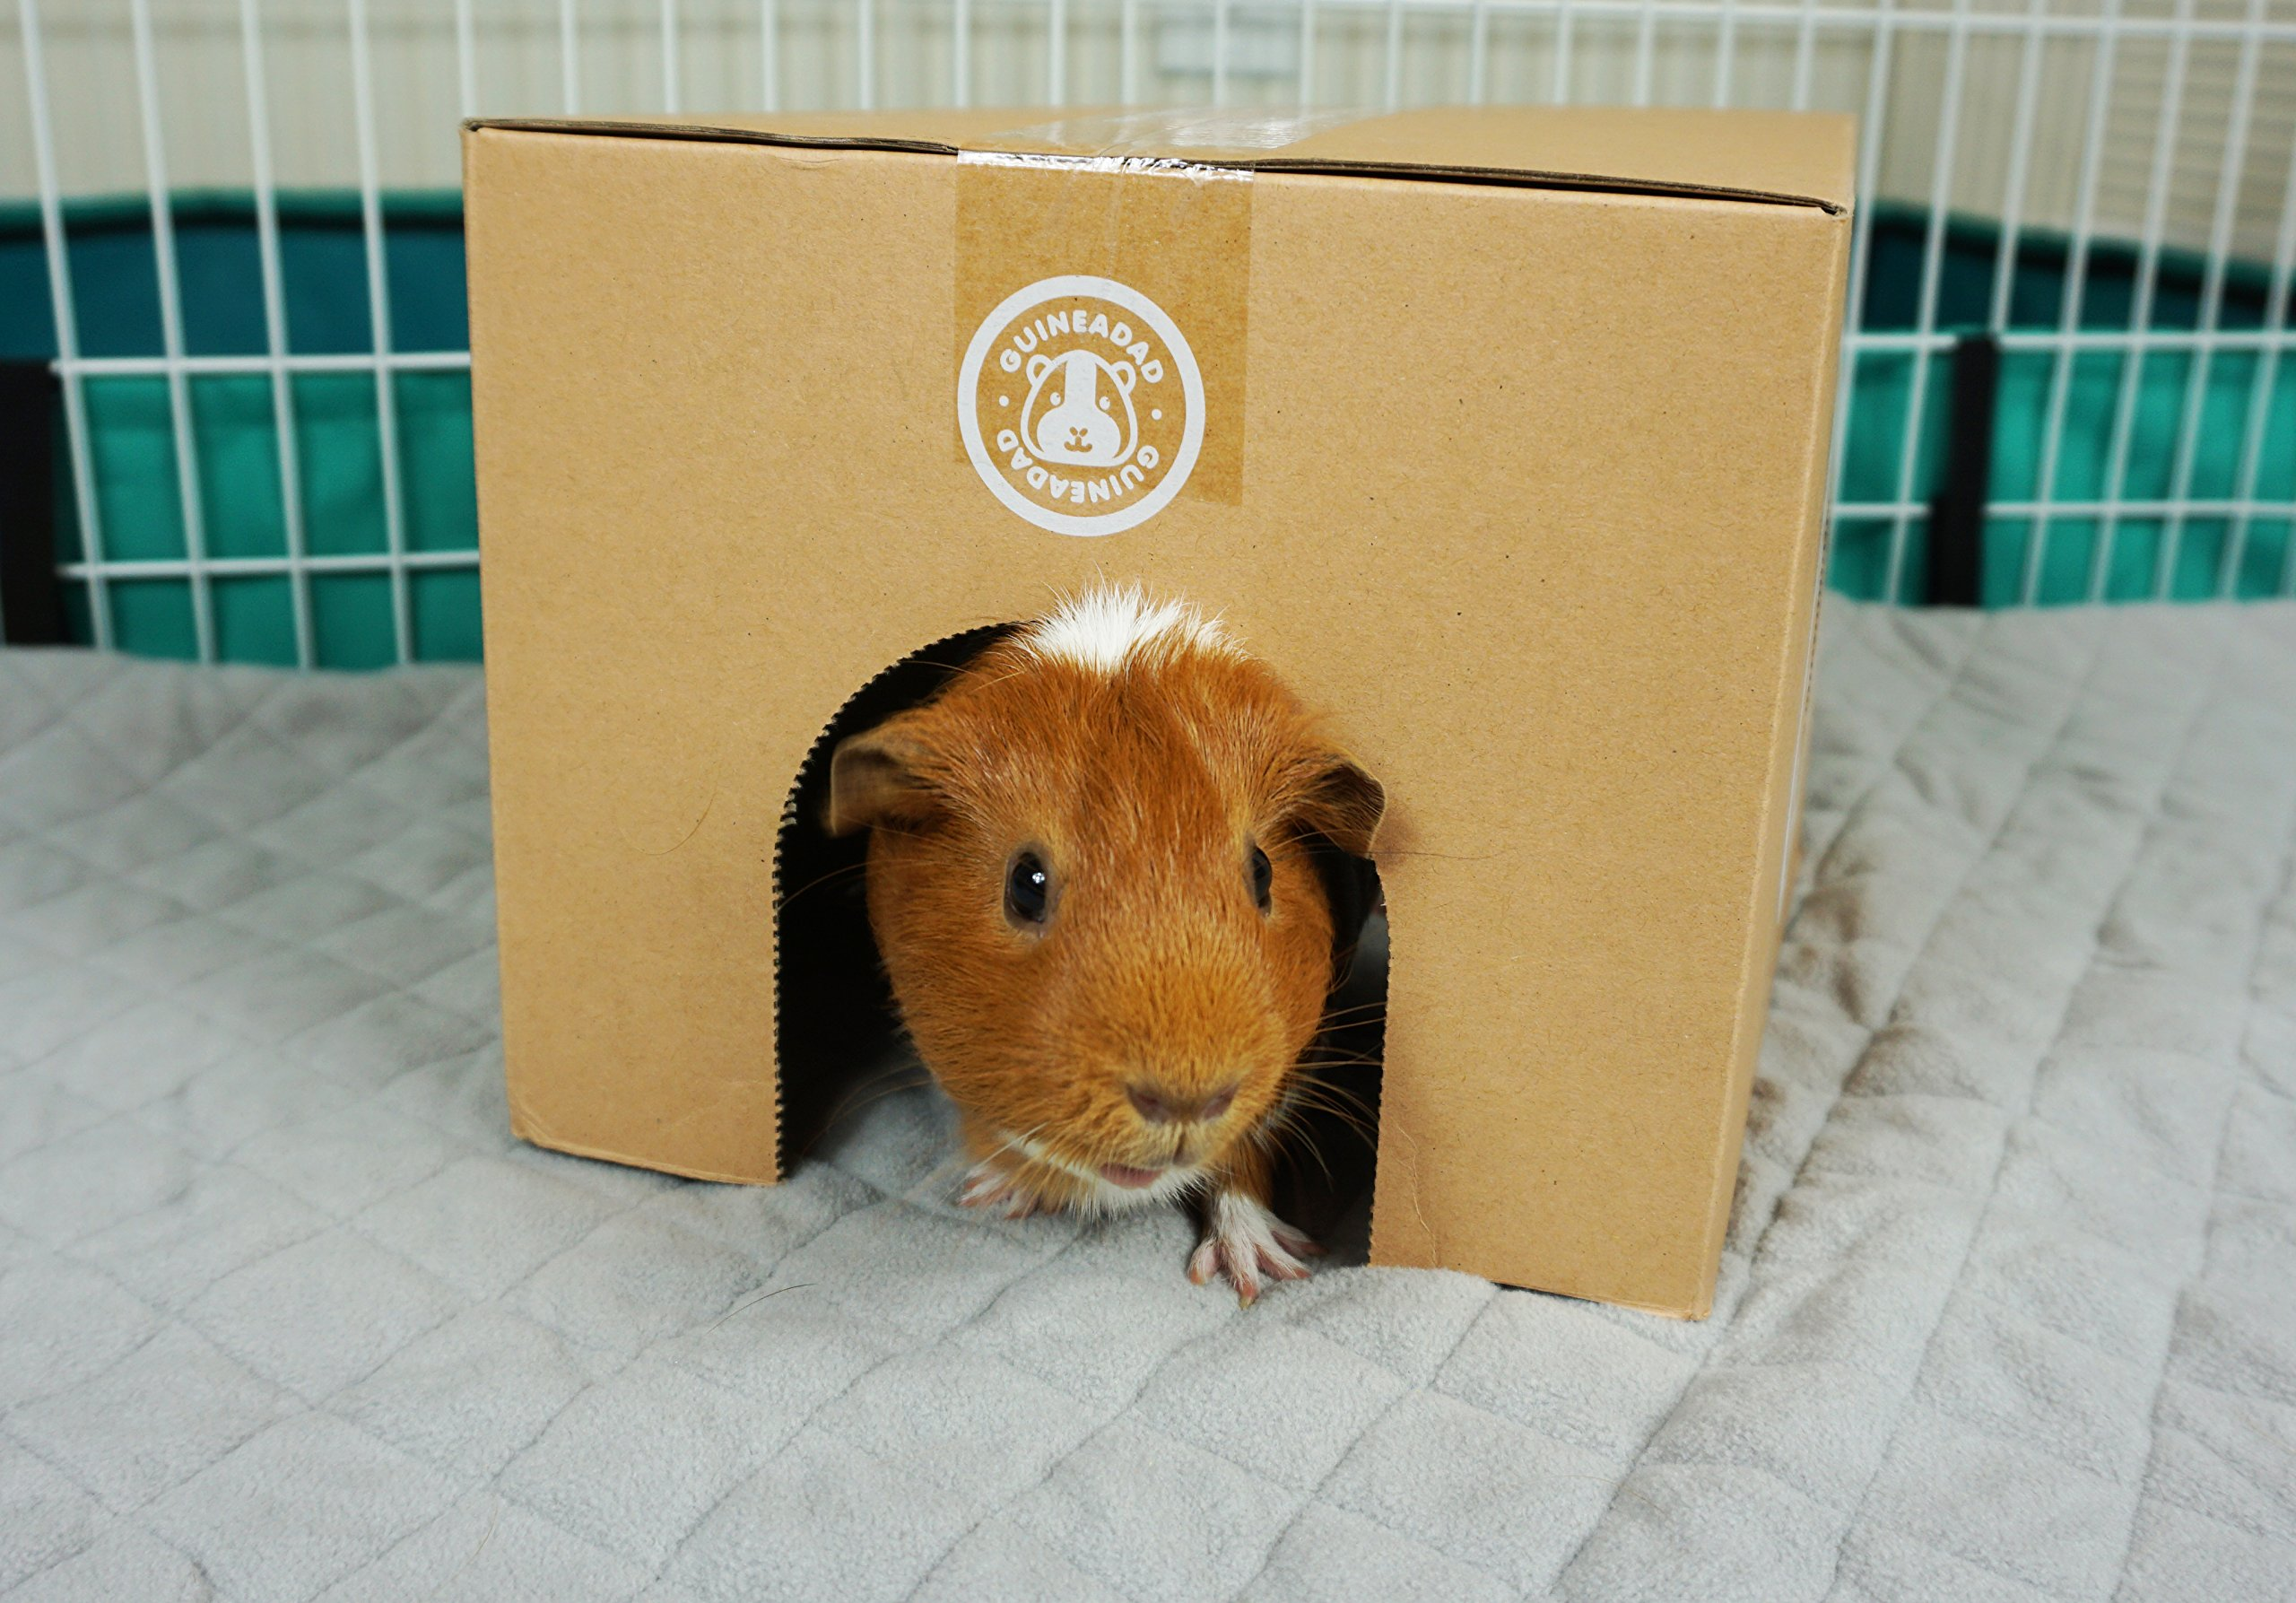 GuineaDad Fleece Liner 2.0 | Guinea Pig Fleece Cage Liners Bedding | Burrowing Pocket Sleeve | Extra Absorbent Antibacterial Bamboo | Waterproof | Available Various Cage Sizes by GuineaDad (Image #3)